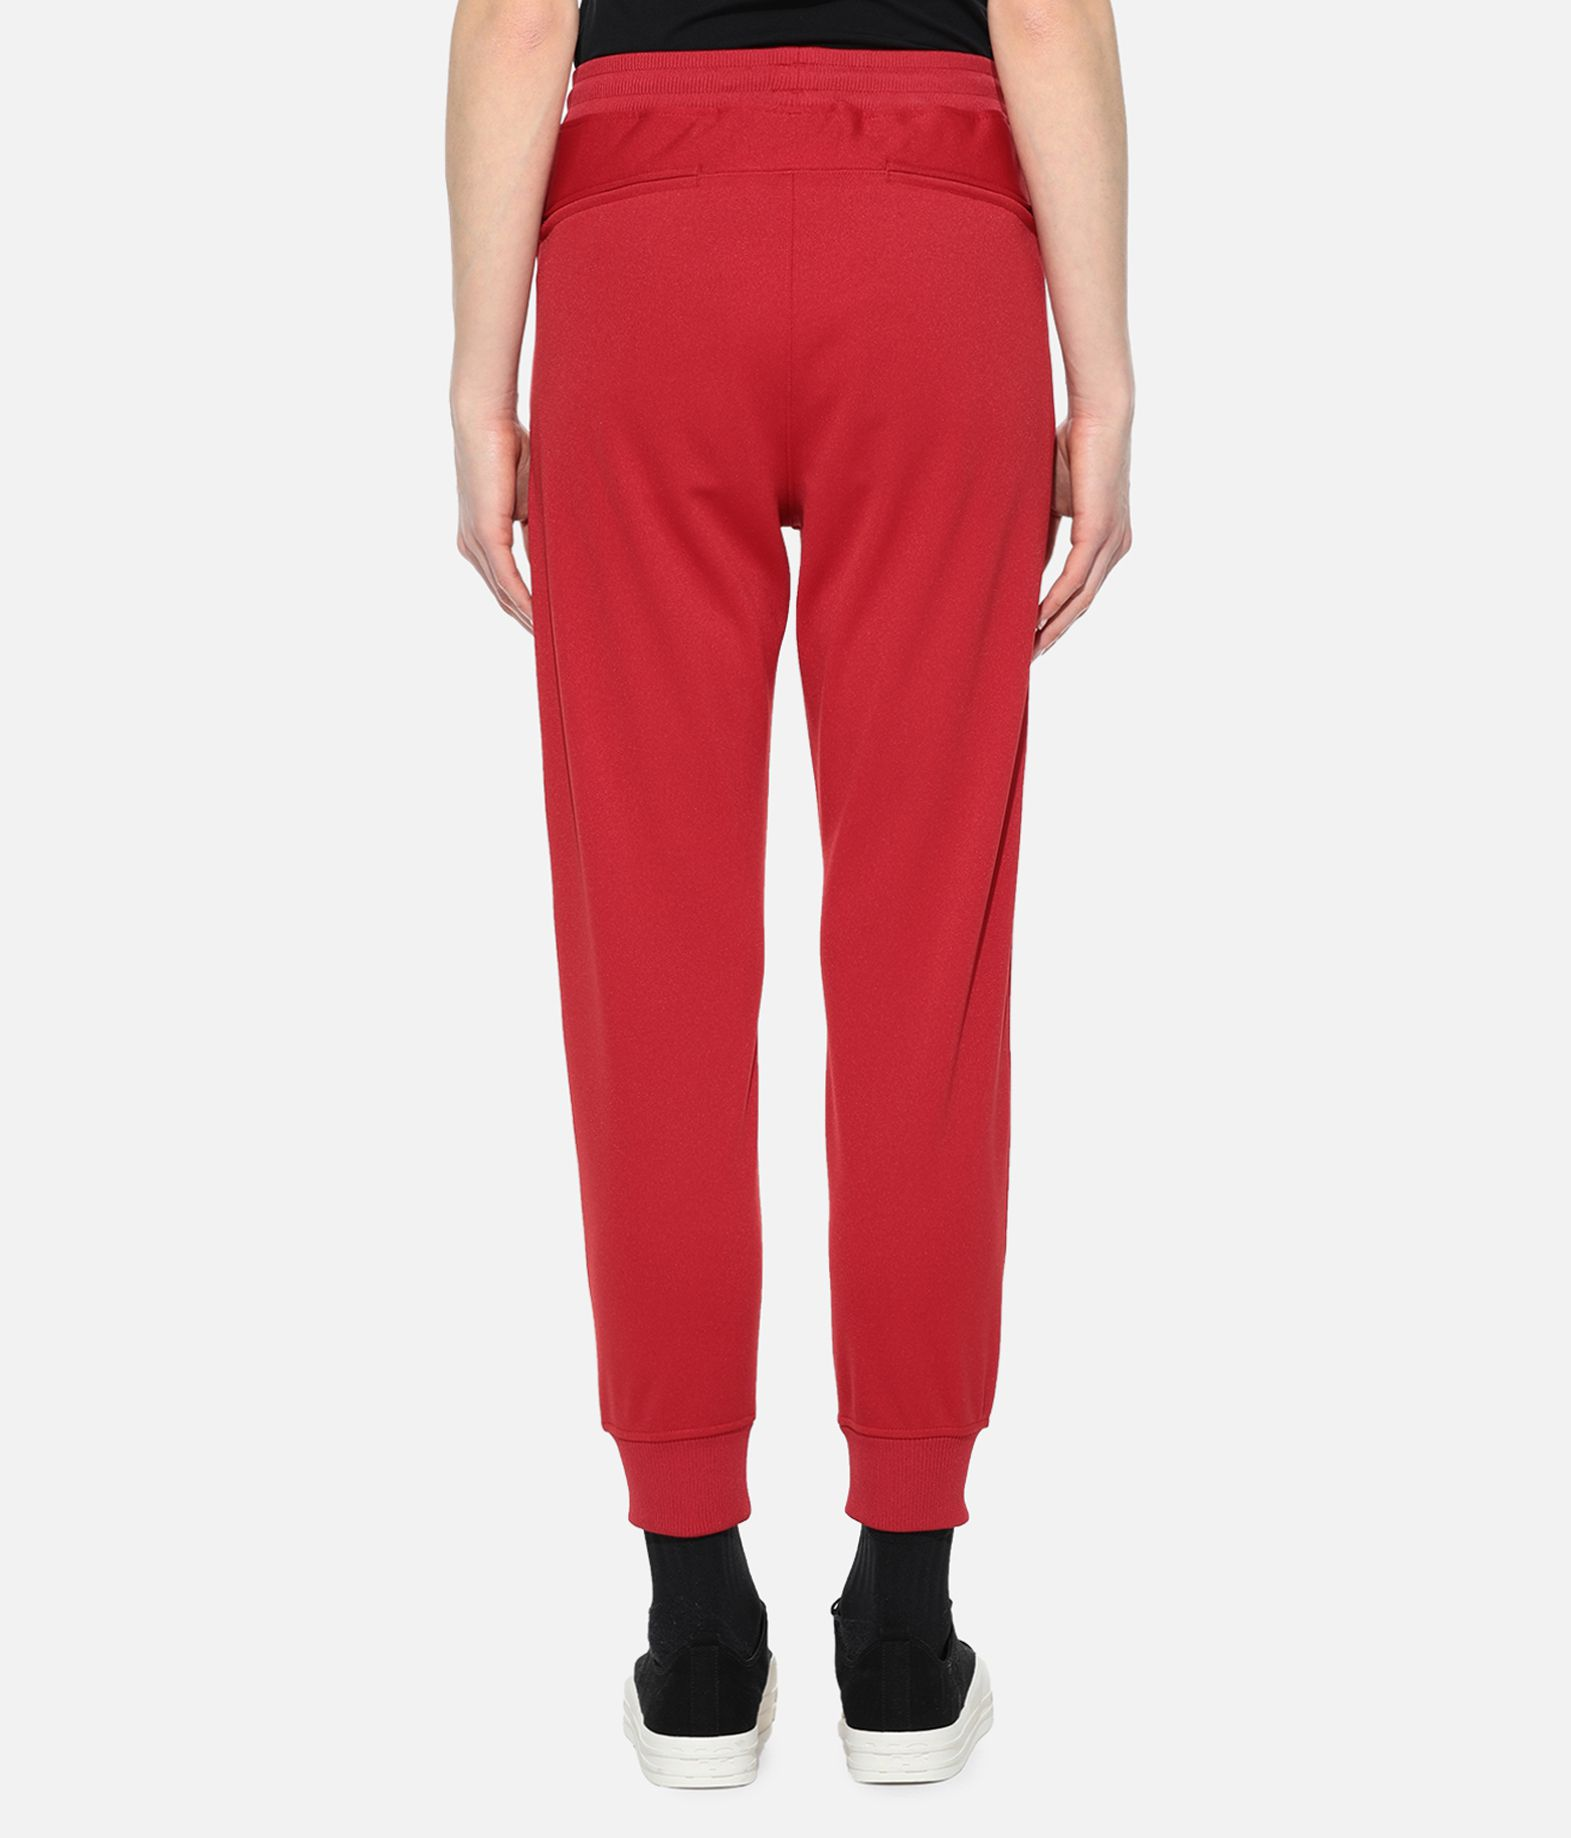 Y-3 Y-3 Classic Track Pants Casual pants Woman d